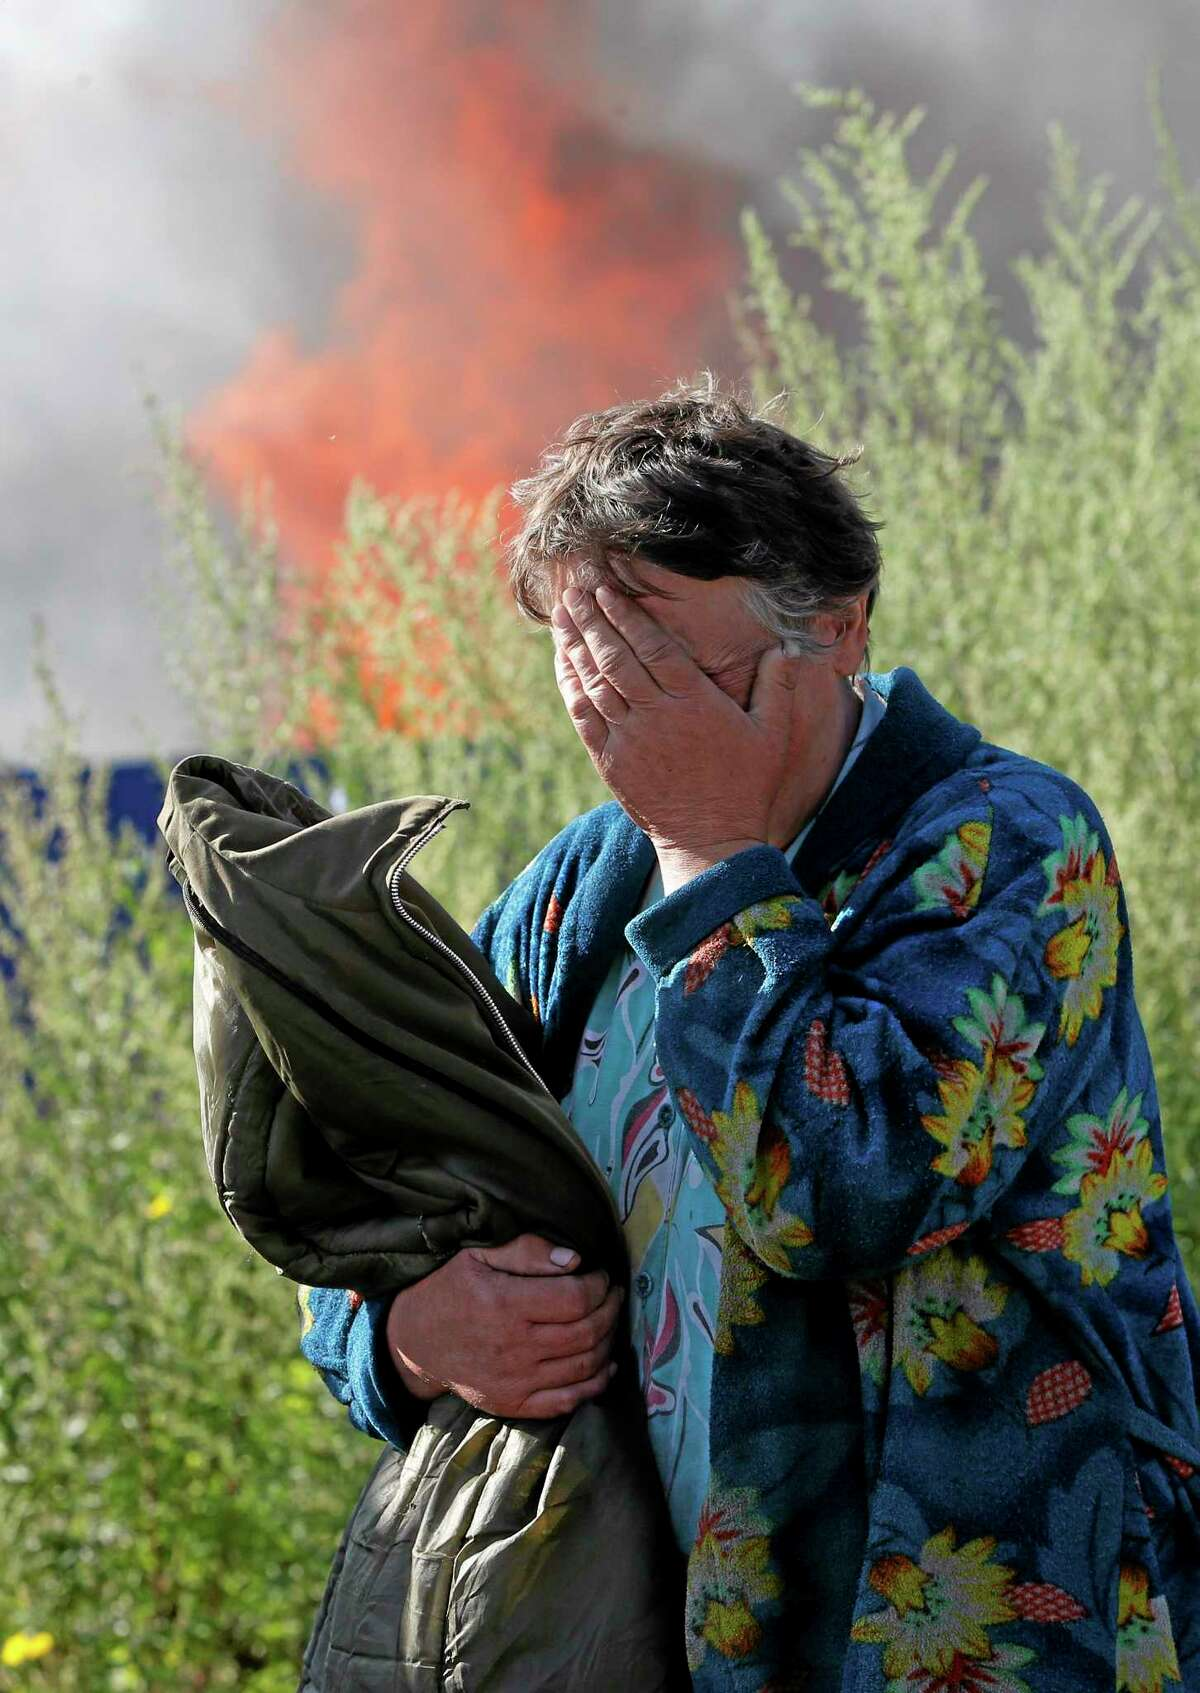 A woman cries near her burning house after shelling in the city of Slovyansk, Donetsk Region, eastern Ukraine, Monday, June 30, 2014. Residential areas came under shelling on Monday morning from government forces. (AP Photo/Dmitry Lovetsky)